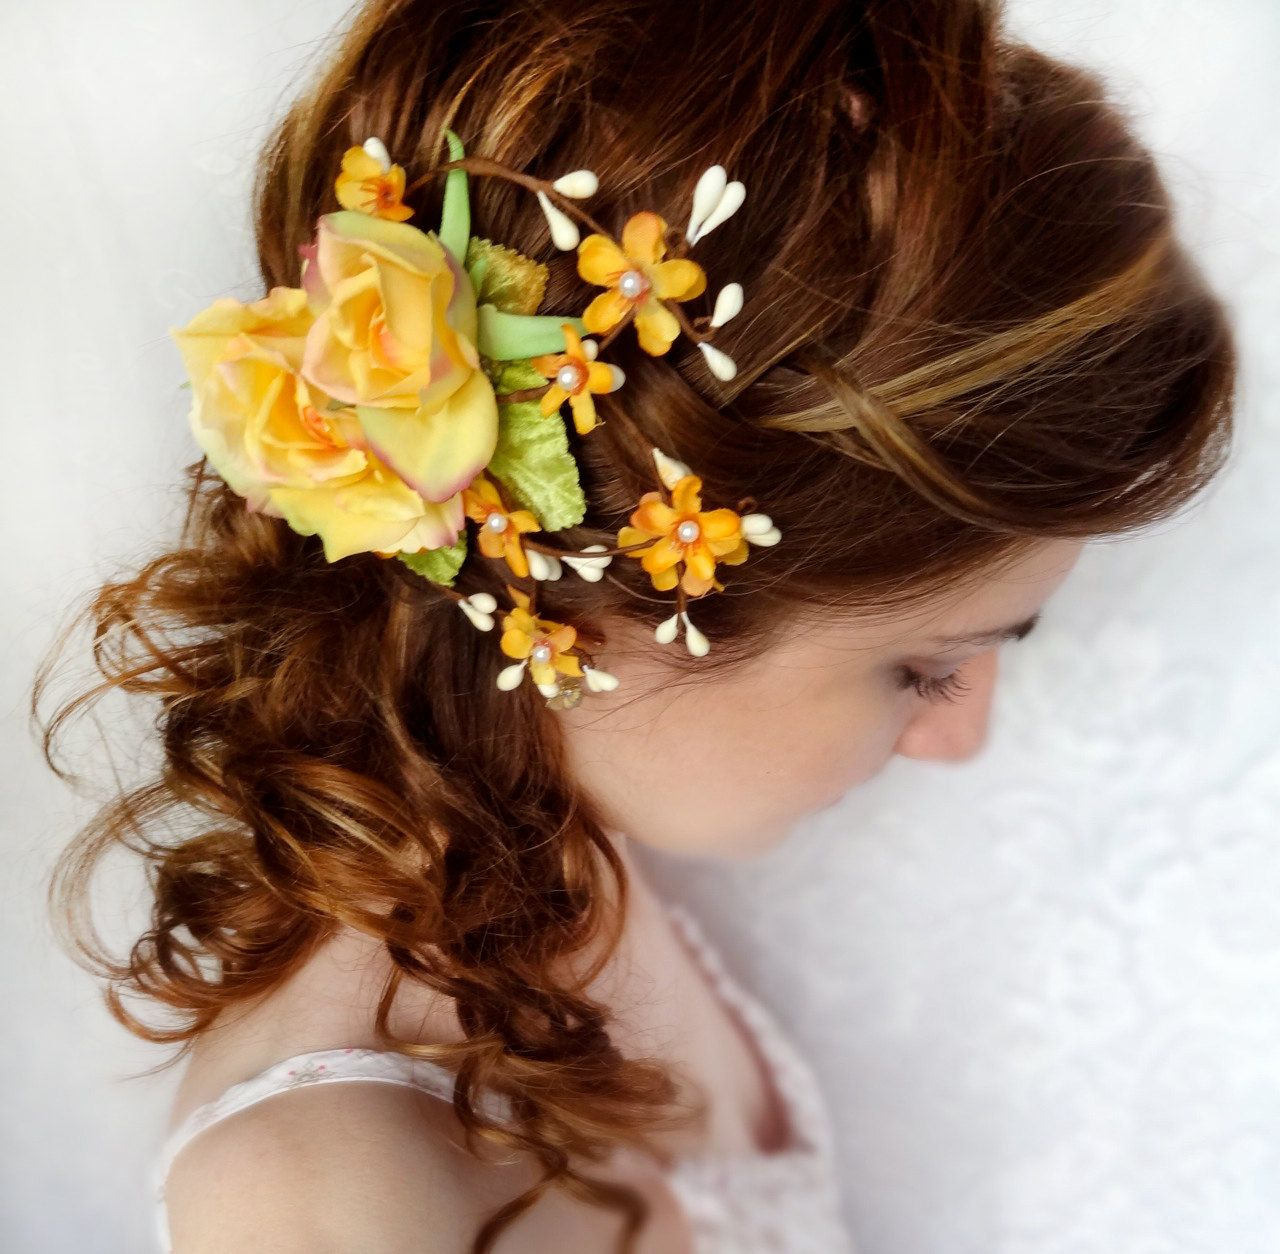 Pin By Glenda Molina On Wedding Accessories Flowers In Hair Hair Clips Wedding Hairstyles